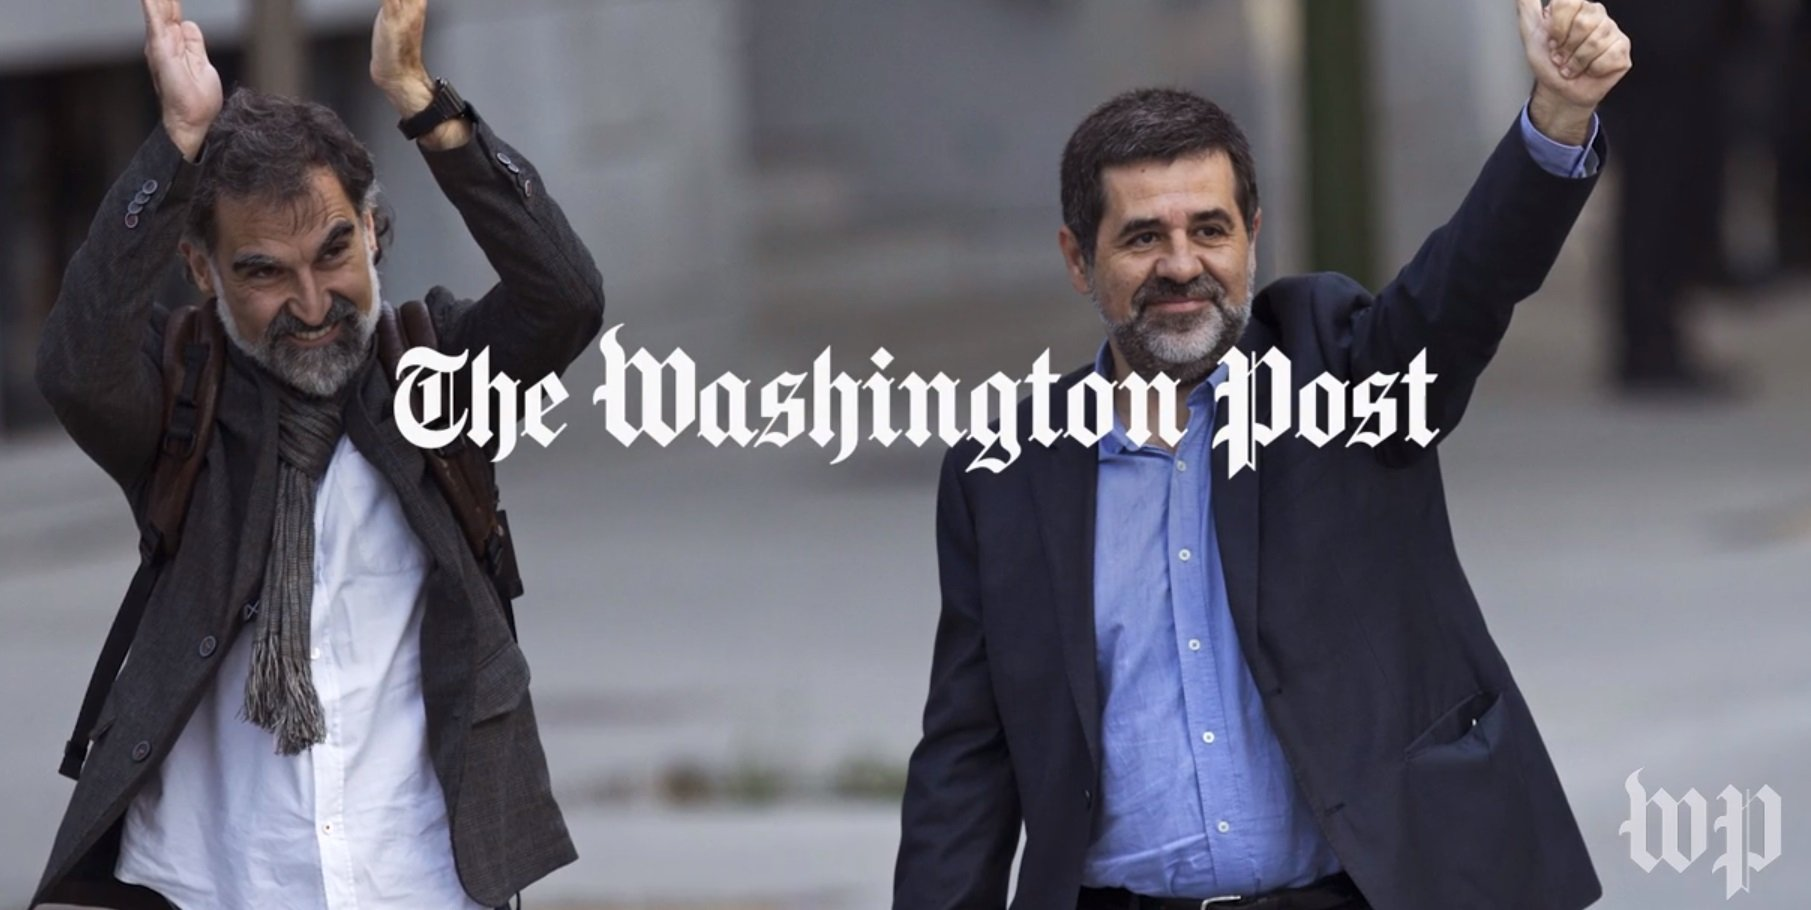 Sànchez i Cuixart Washington Post